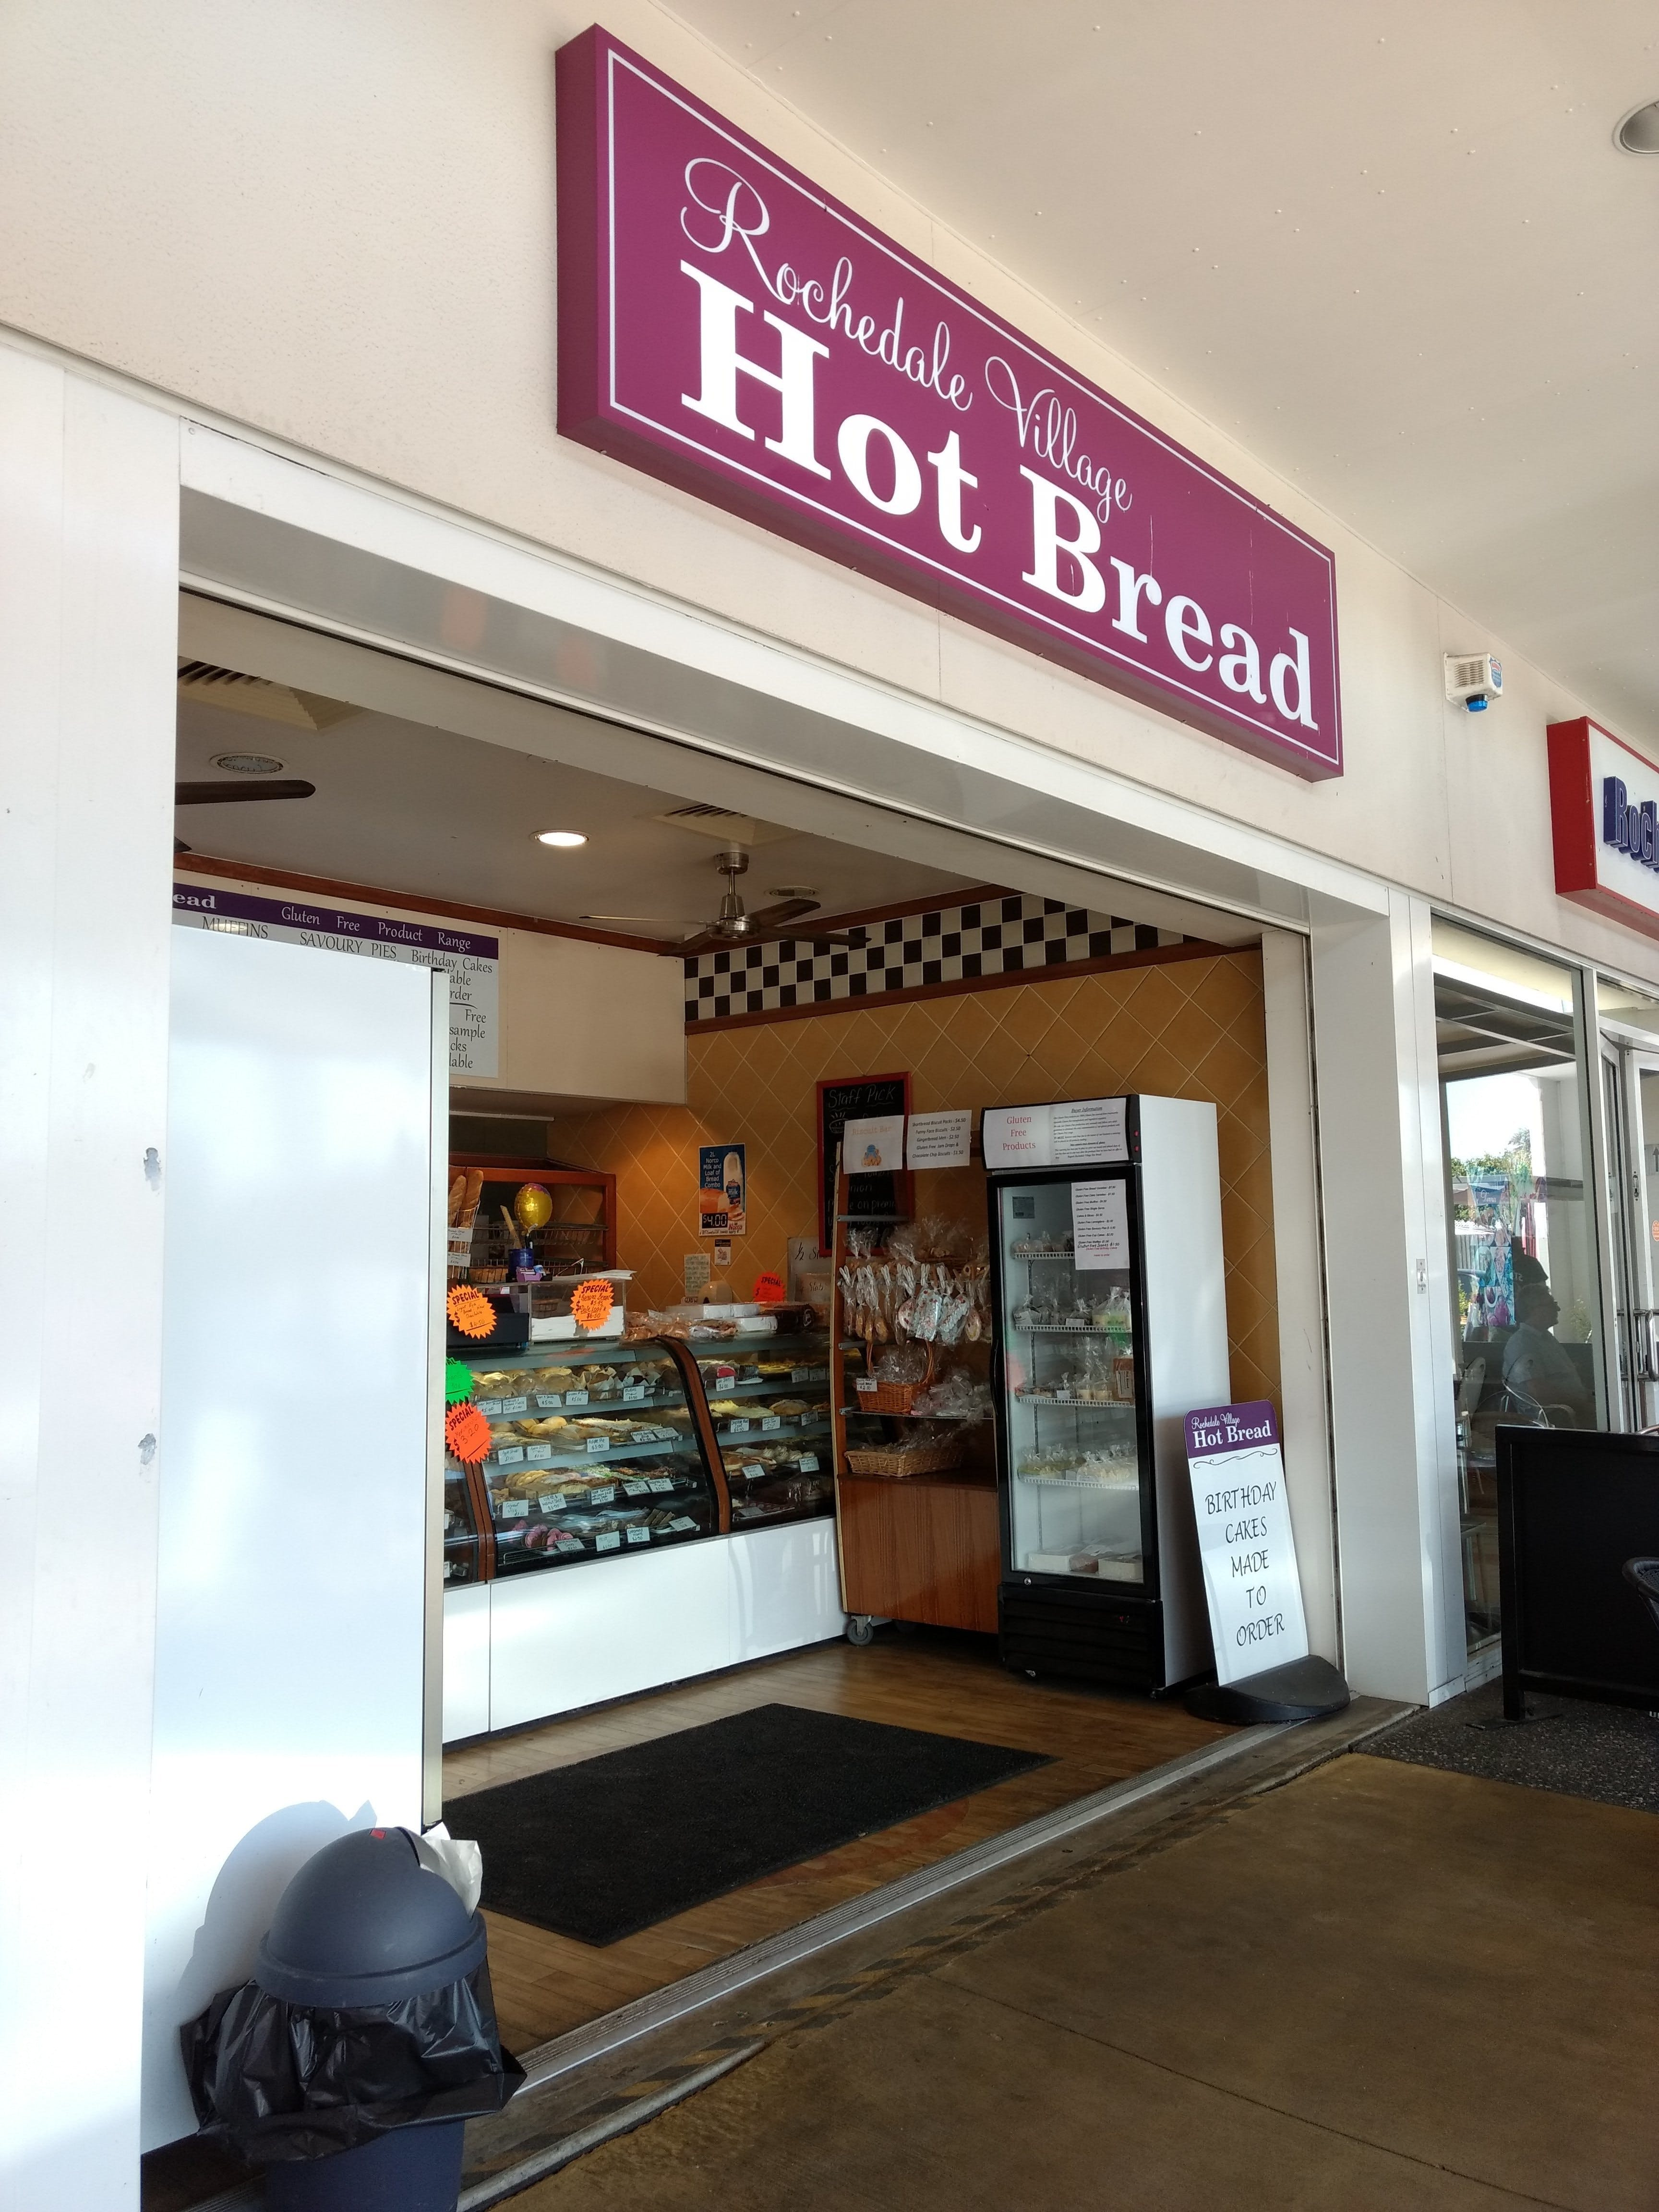 Rochedale Village Hot Bread - Broome Tourism